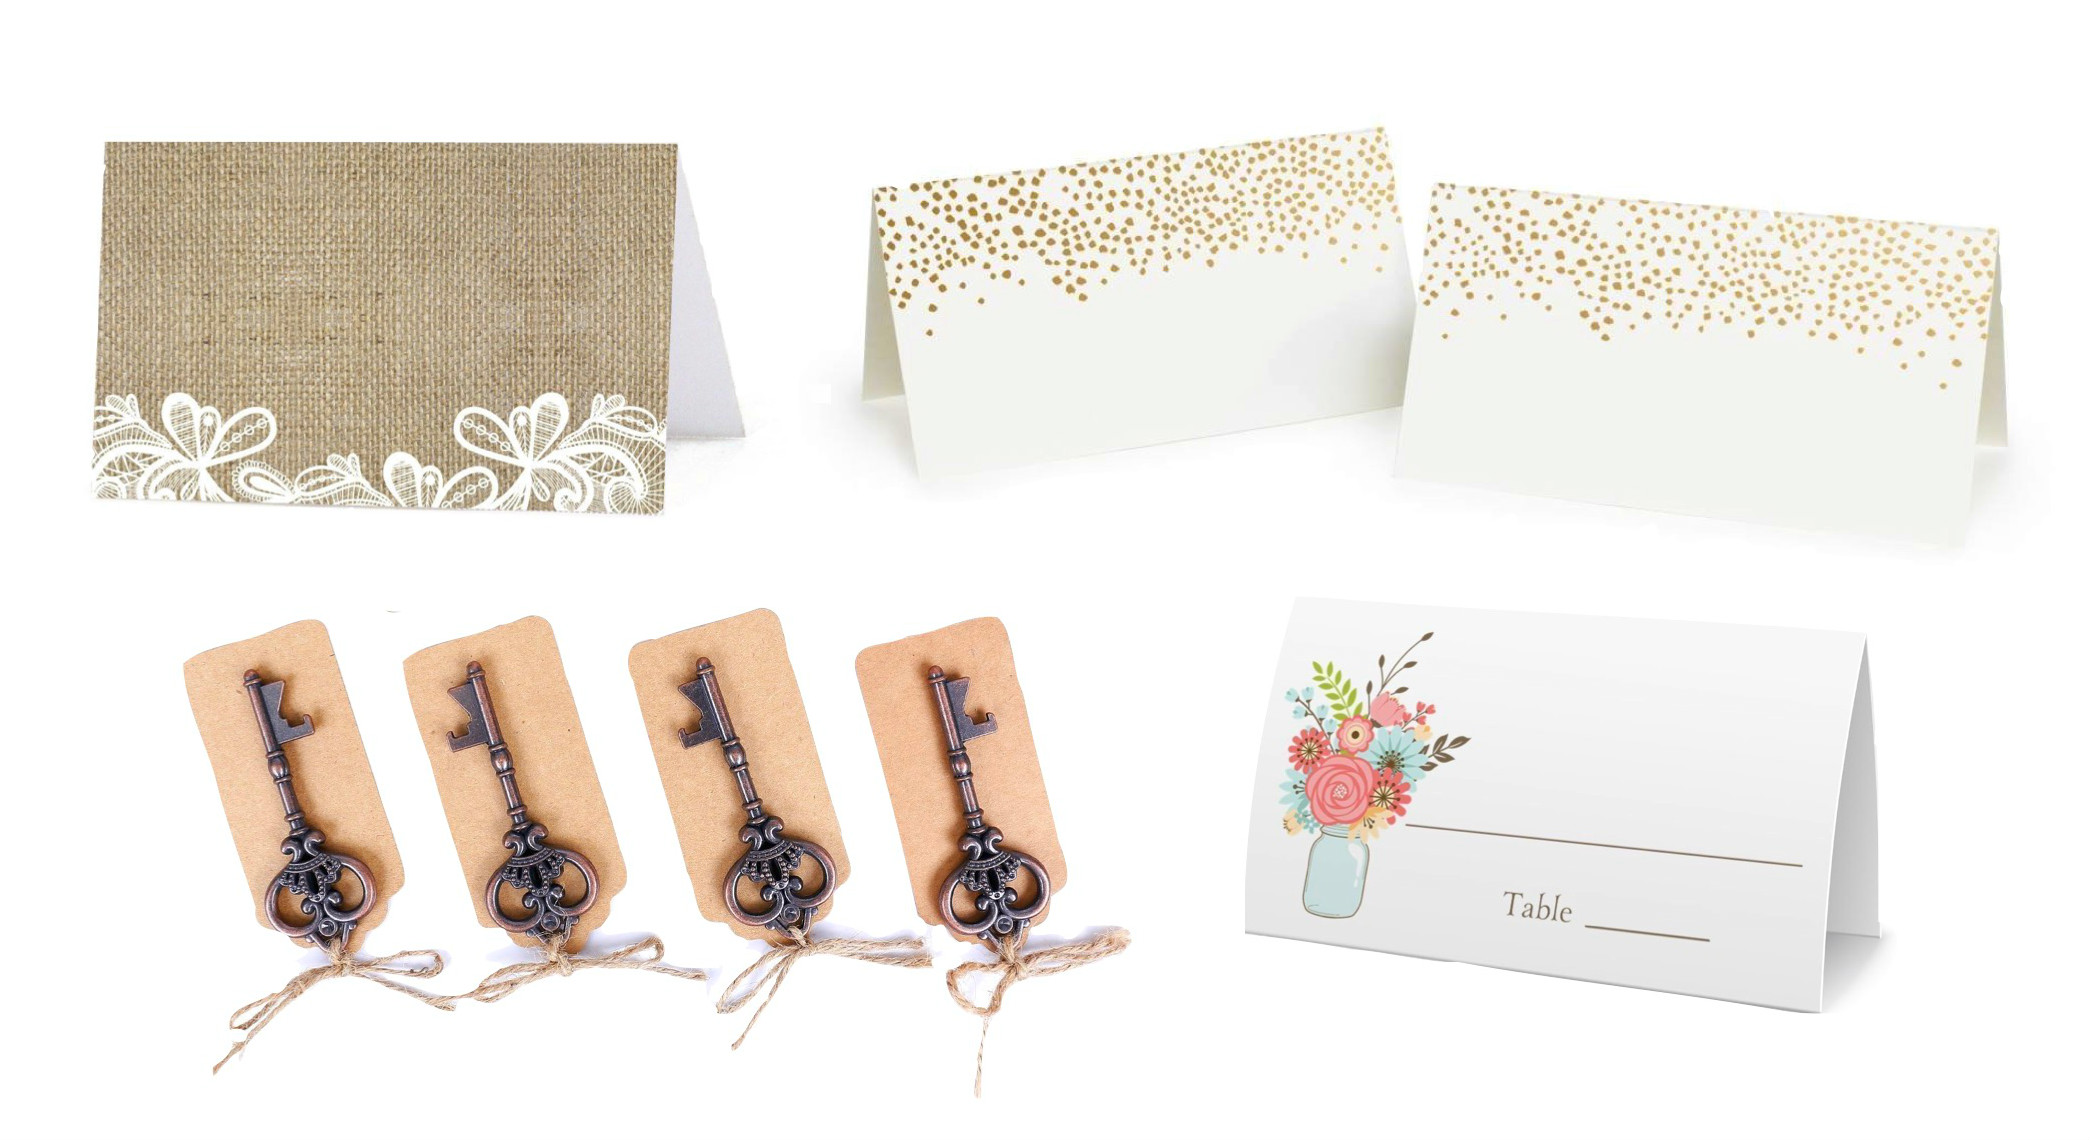 place cards, wedding place cards, place card holders, wedding name cards, table name cards, place cards for wedding, escort cards, name cards